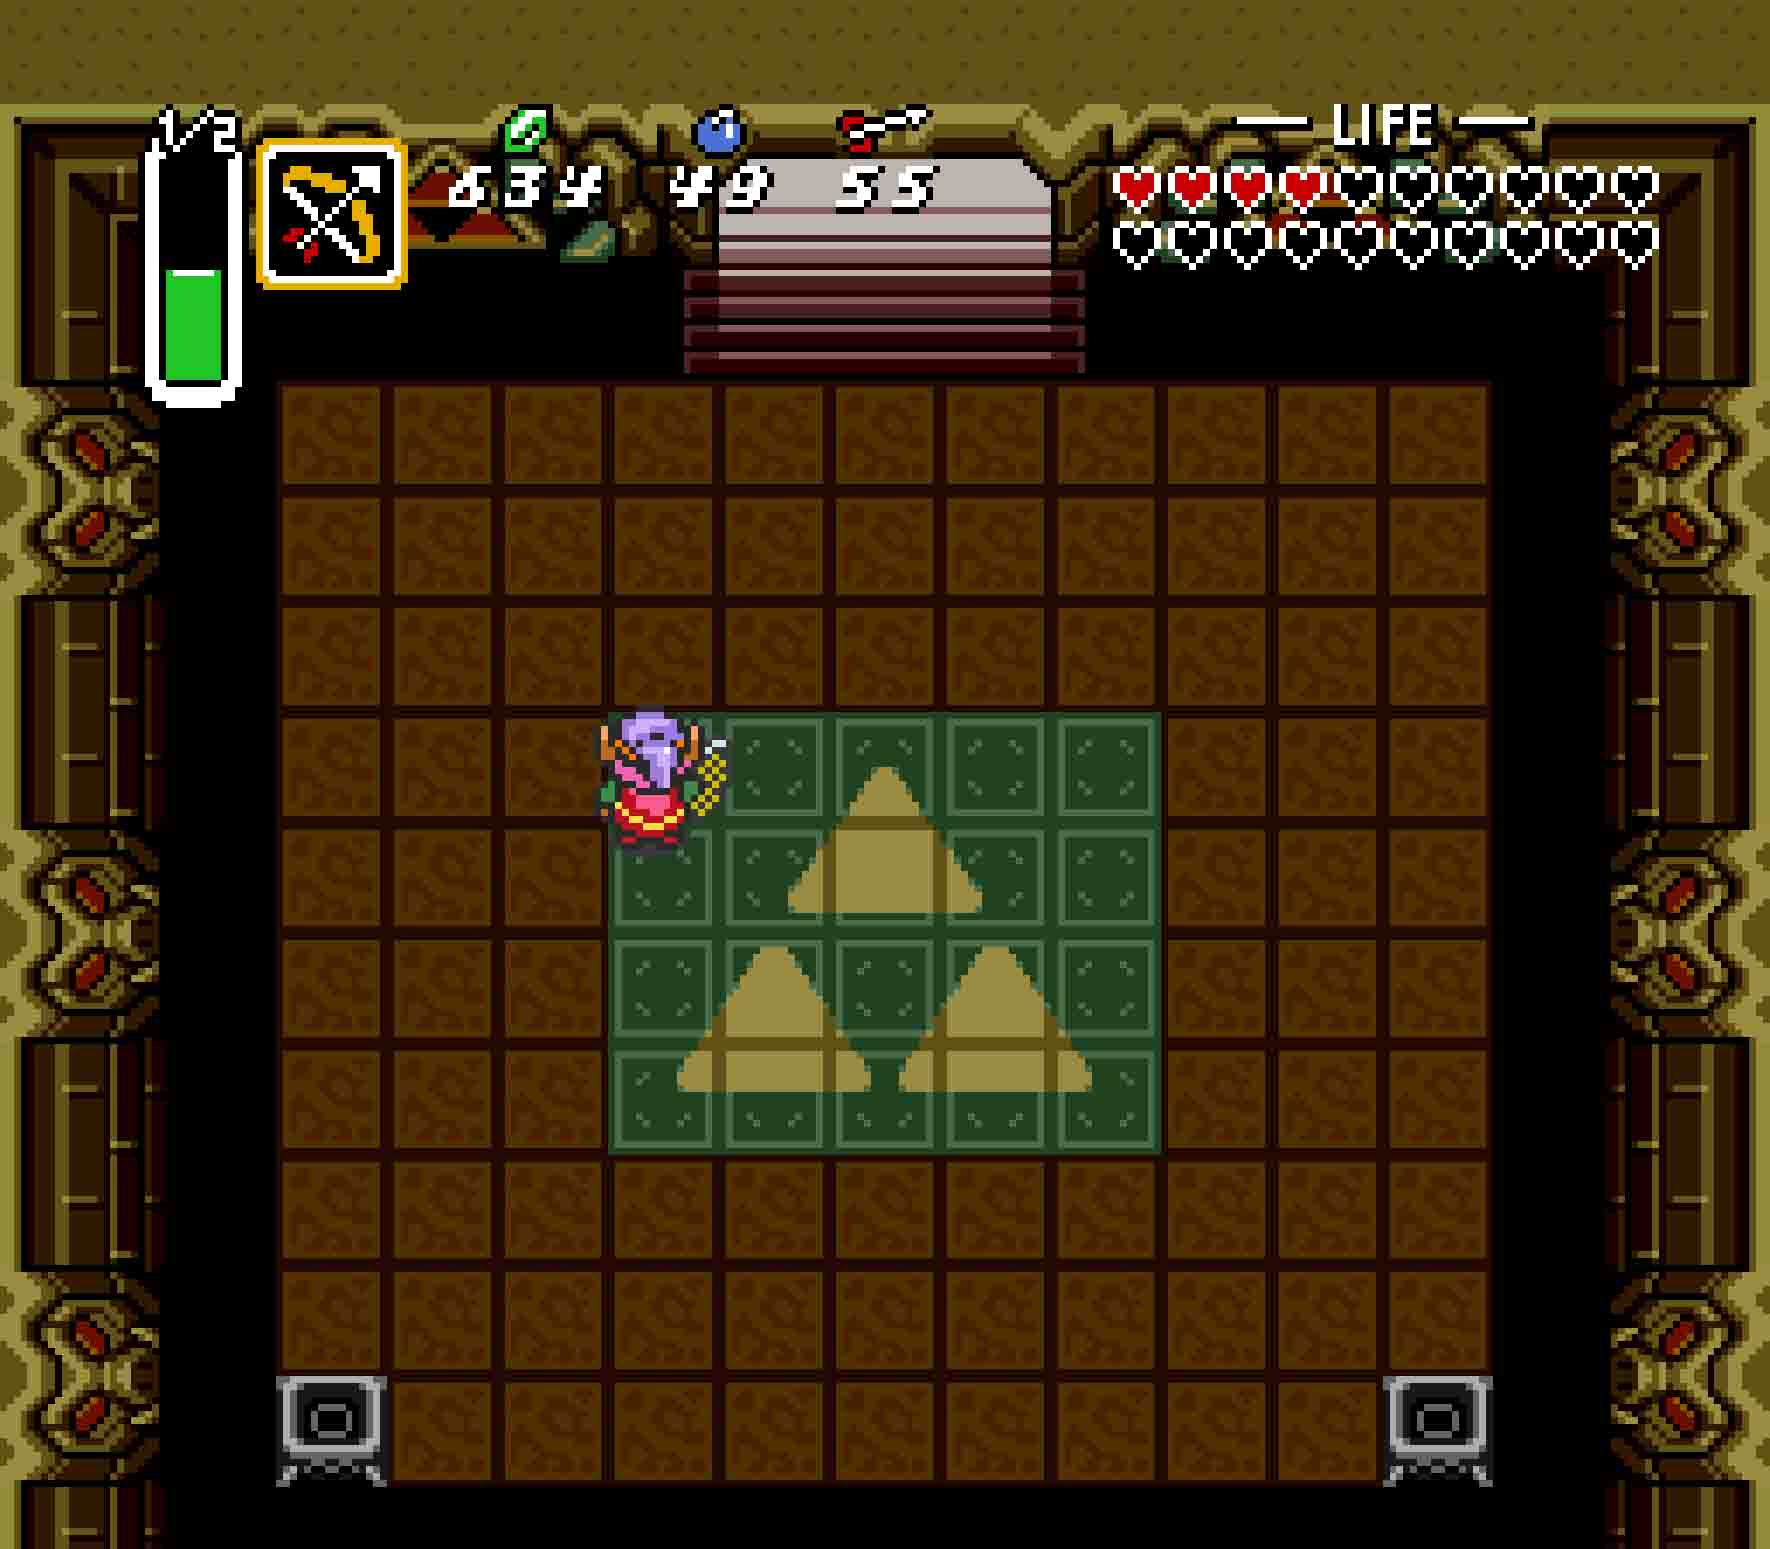 Don't get cocky because you've destroyed Ganon. Falling down now means having to do it all over again.